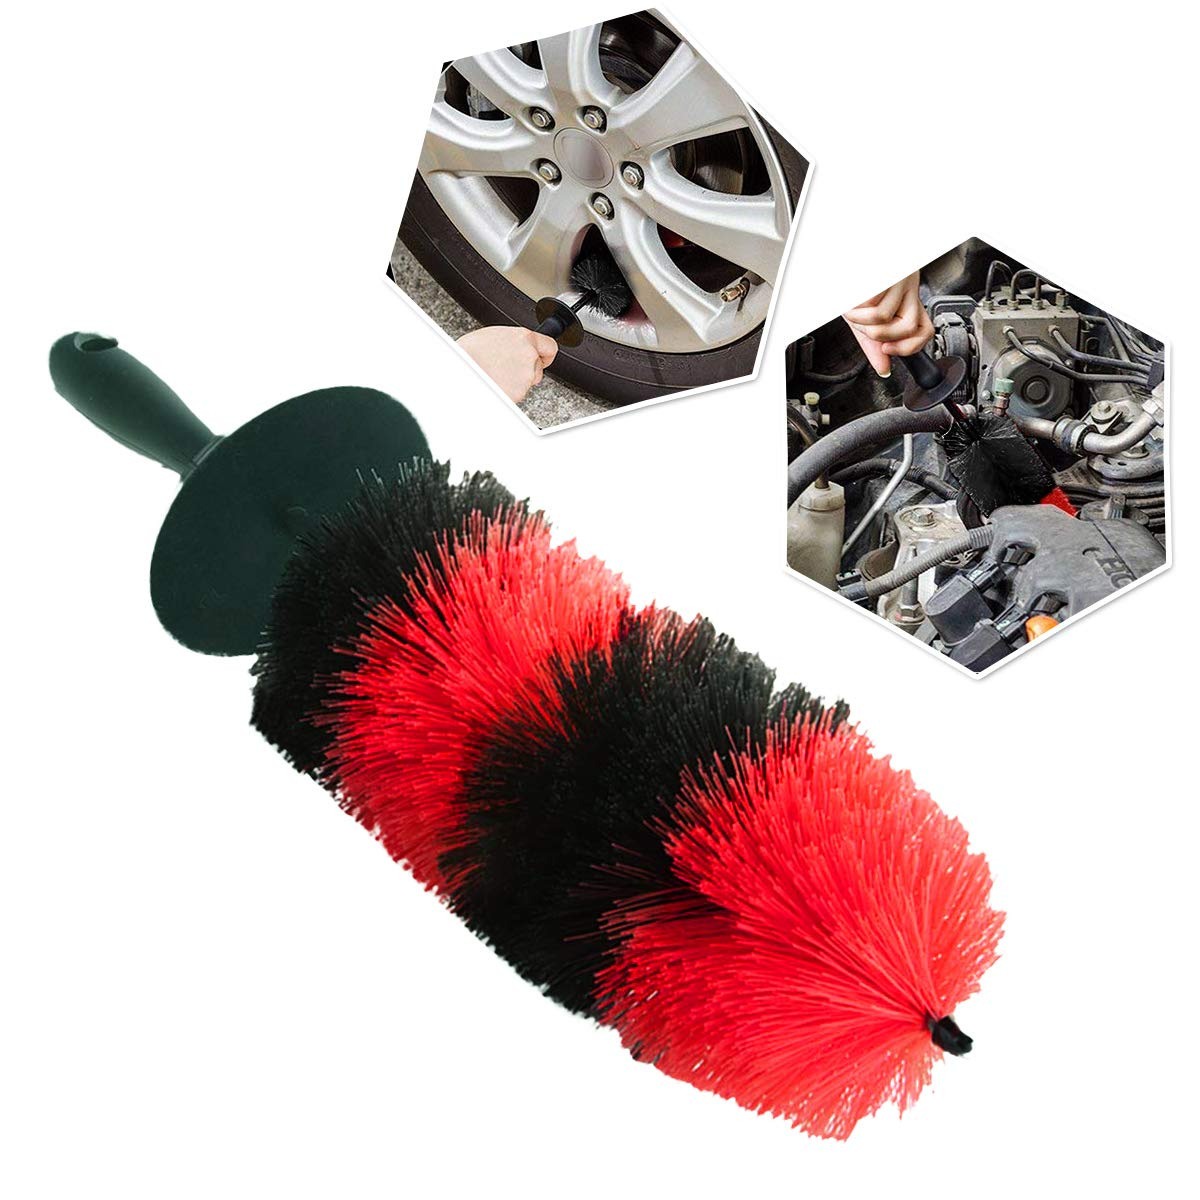 Zone Tech Master Wheel Brush - Premium Quality Durable Multipurpose Wheel and Rim Detailing 18'' Brush Perfect Also for Motorcycles